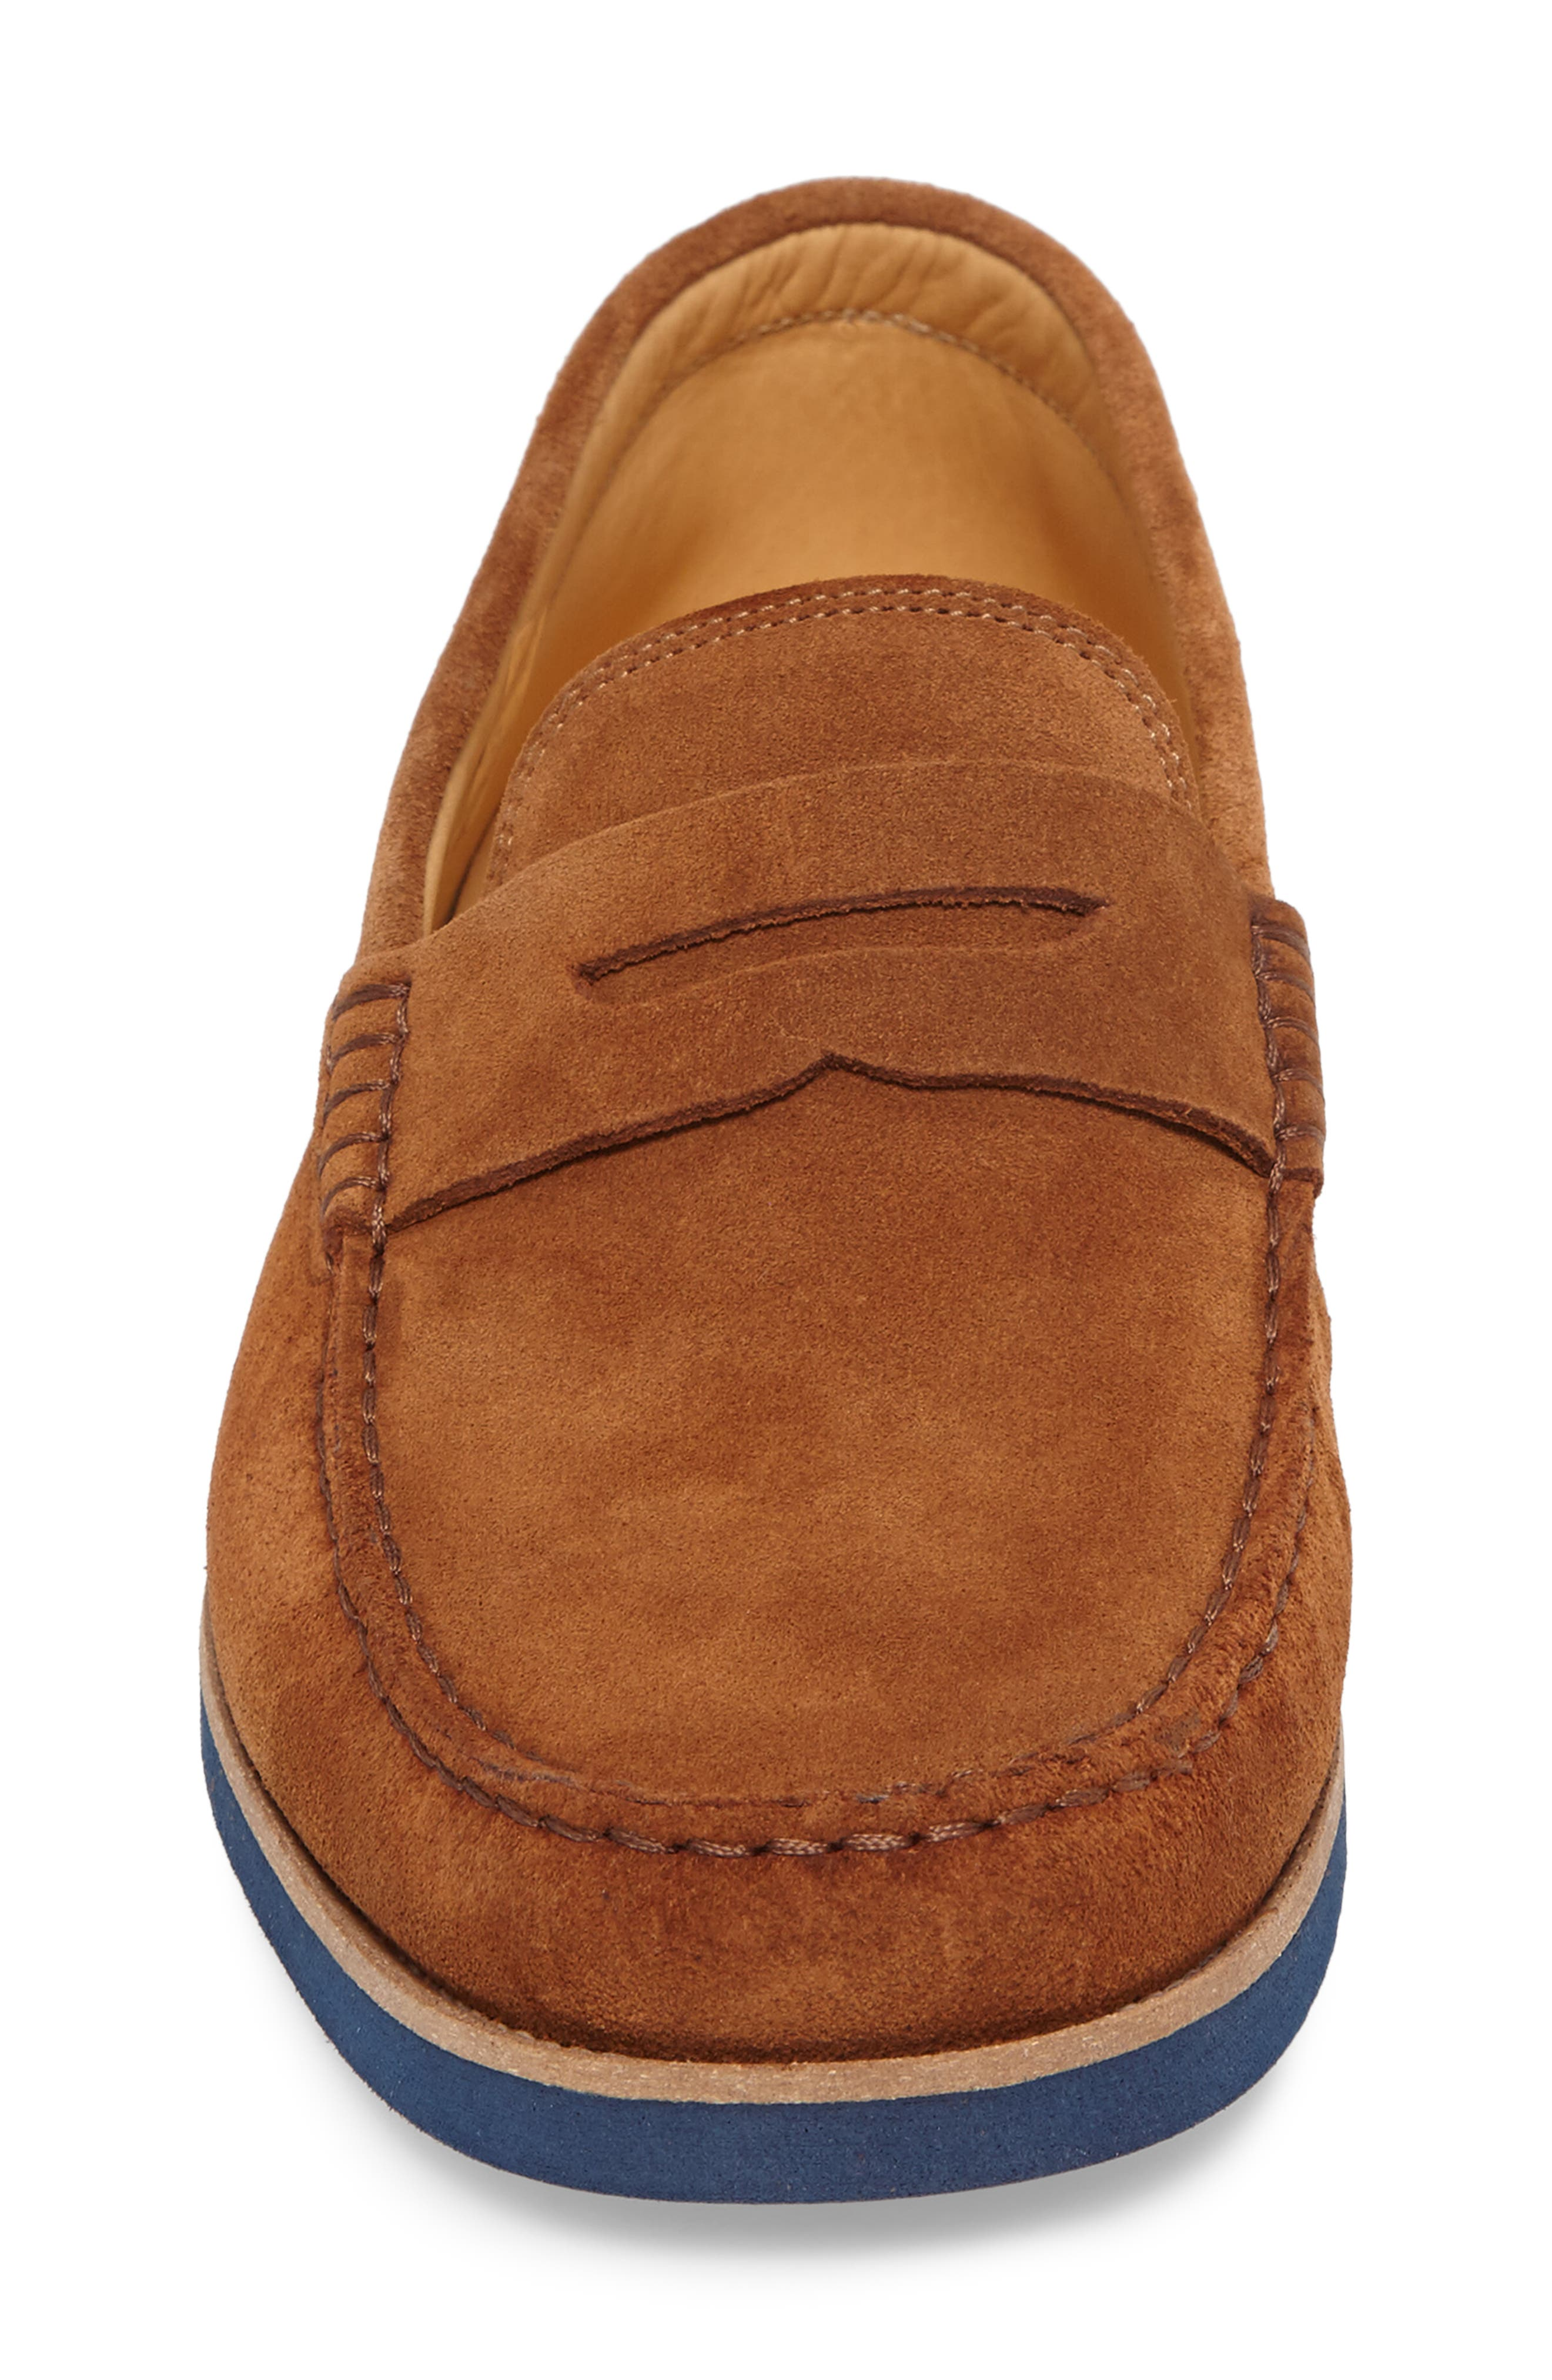 Kennedy Penny Loafer,                             Alternate thumbnail 4, color,                             MEDIUM BROWN SUEDE